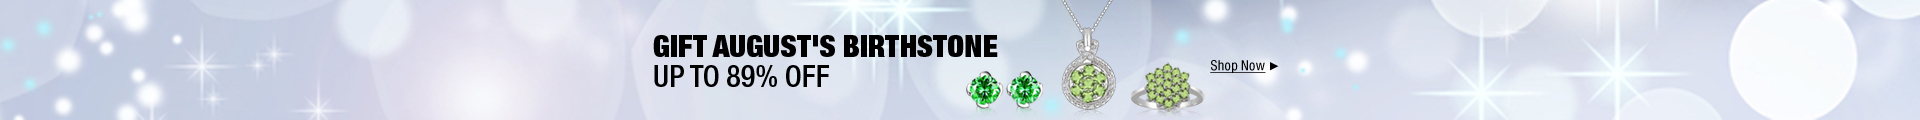 Gift August's birthstone